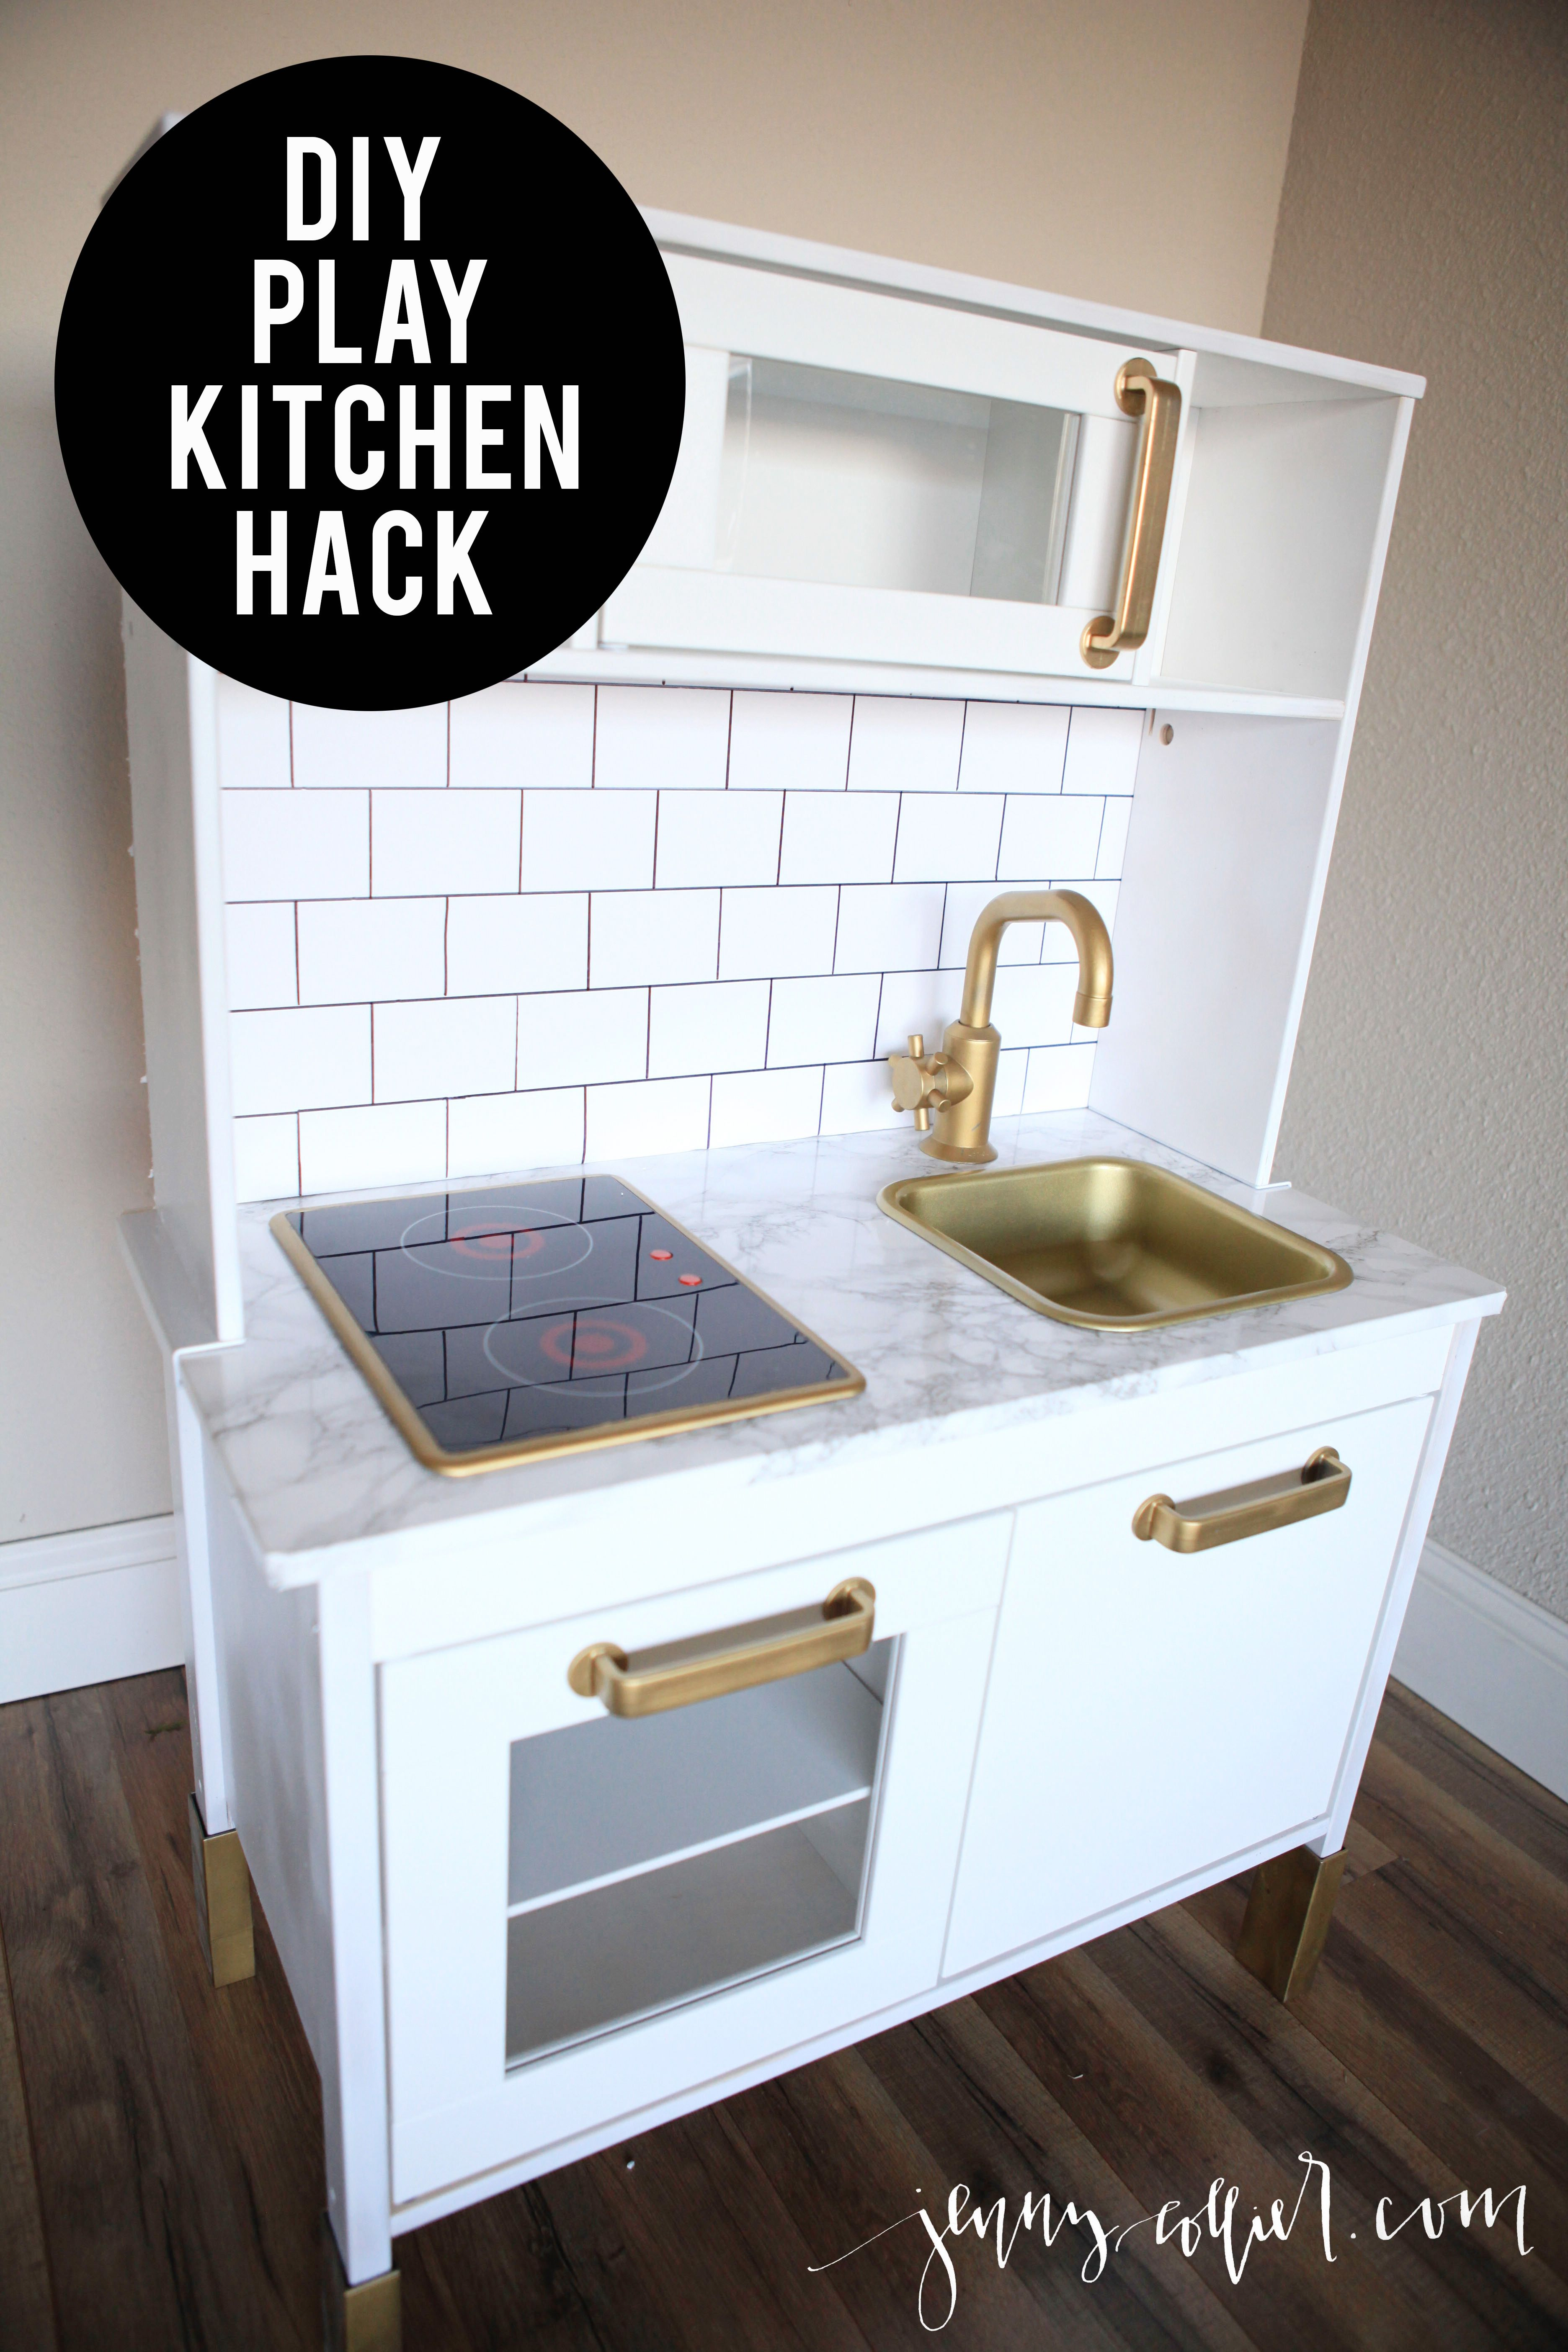 Sharing a tutorial for a chic DIY play kitchen hack